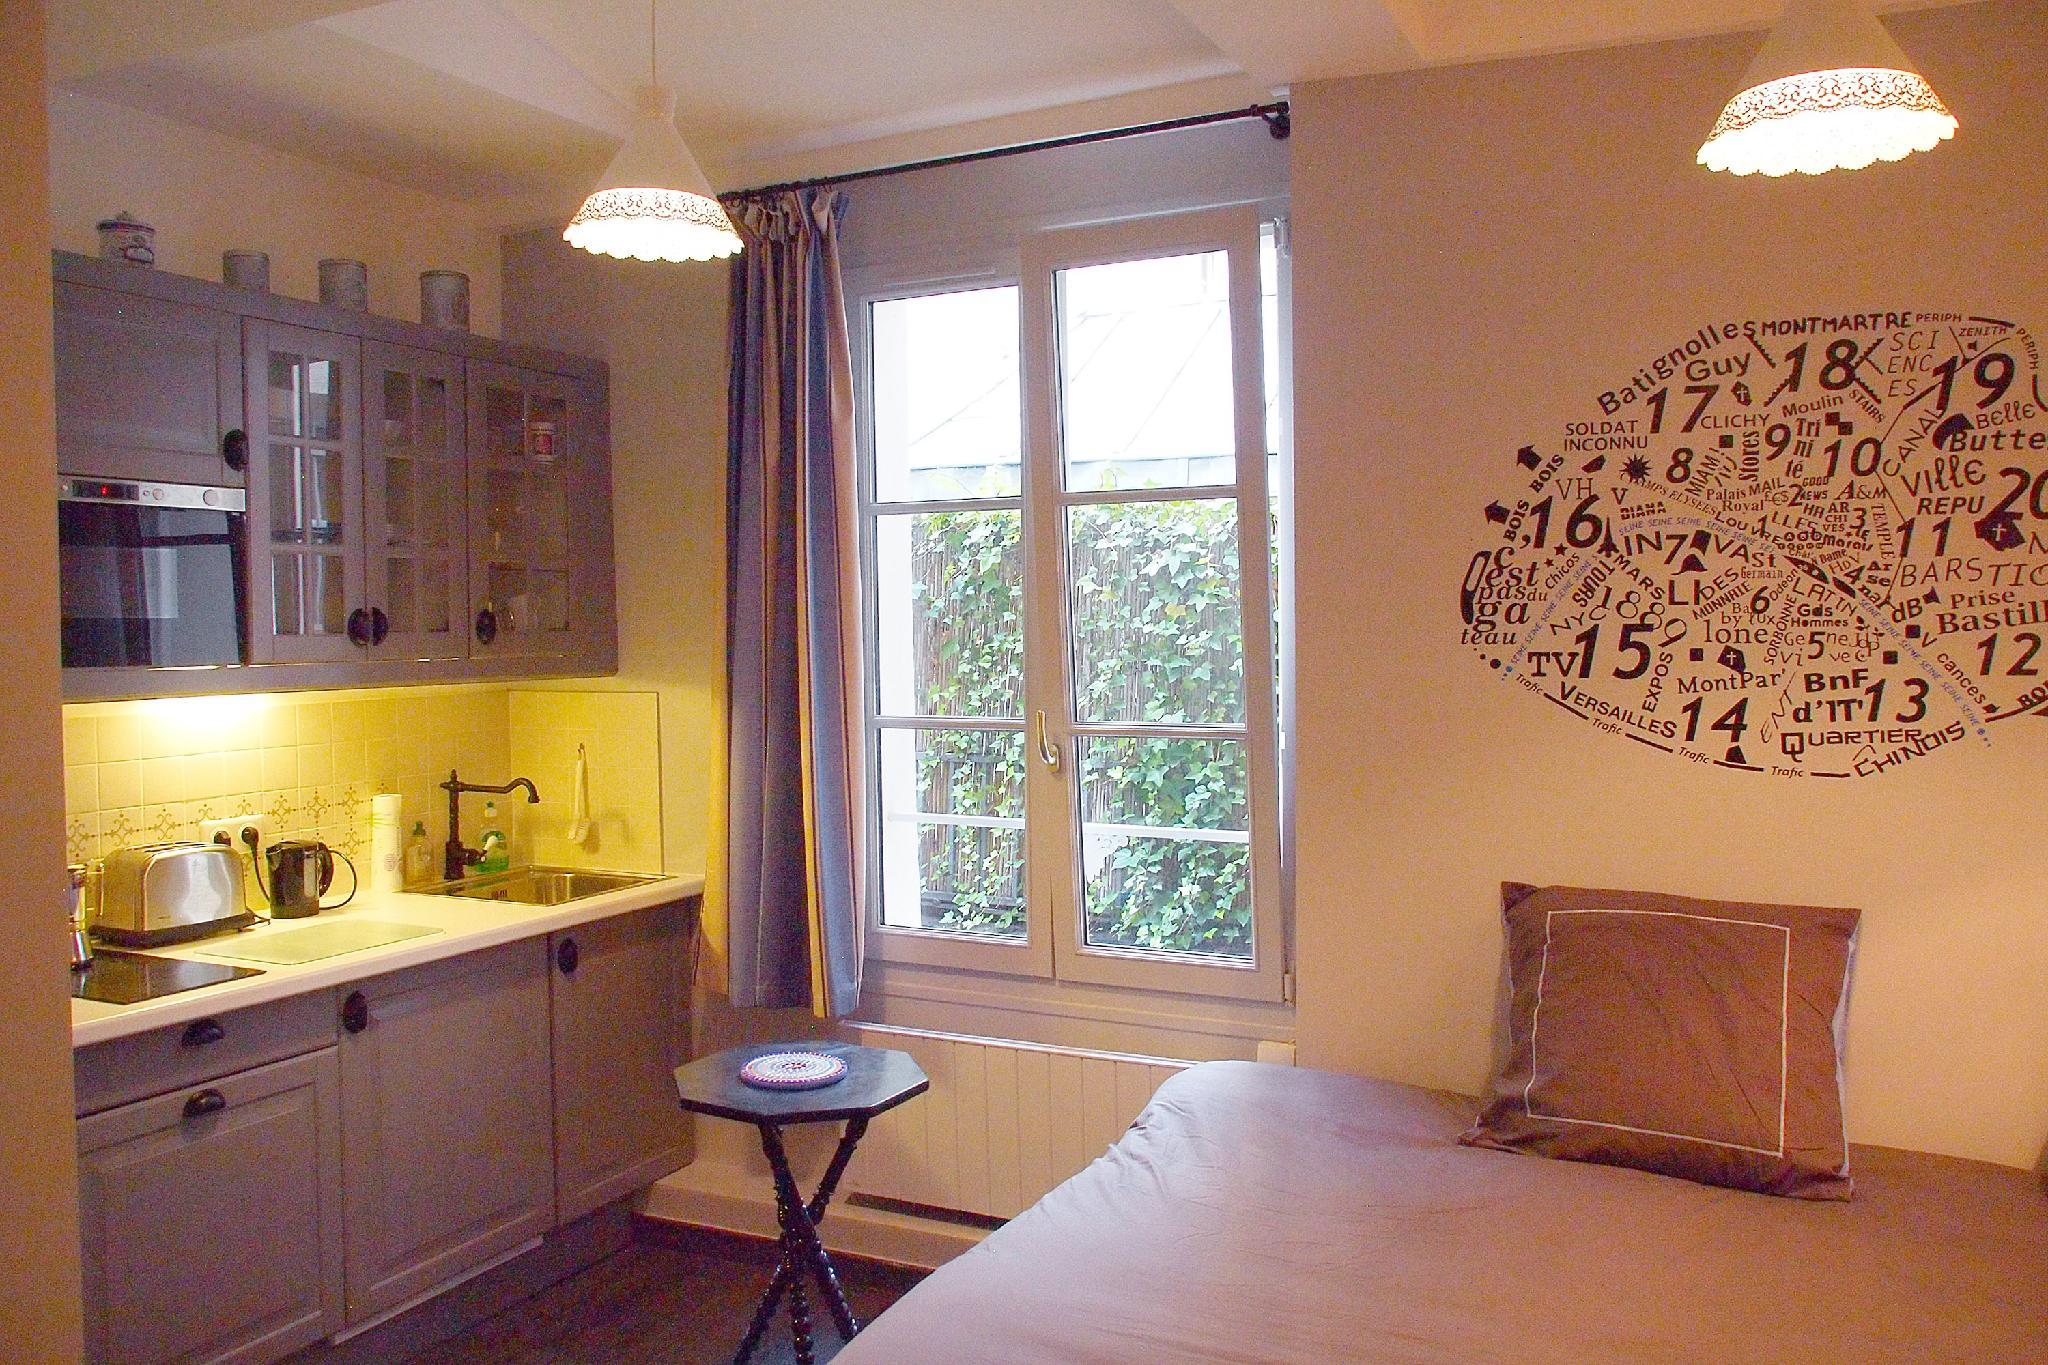 Cosy Petit Paris in the Marais - the place to be!